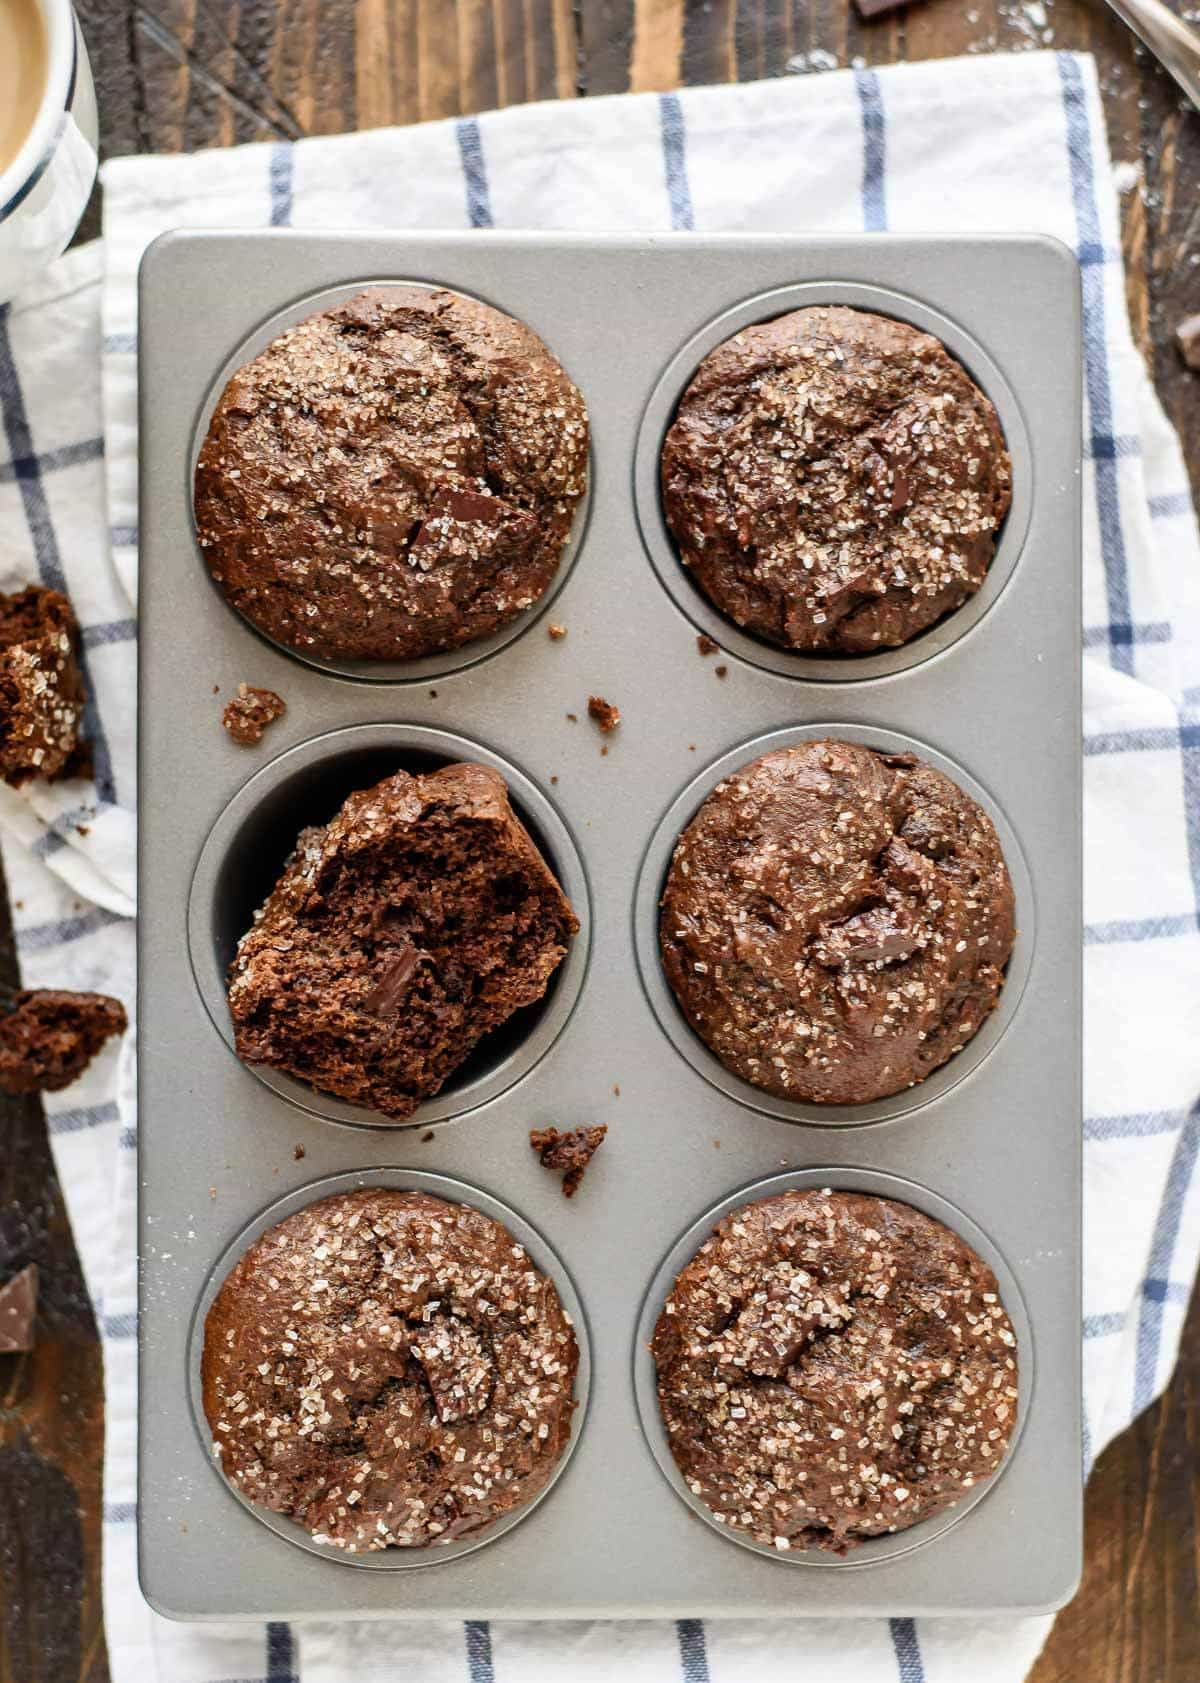 These gingerbread muffins are filled with chocolate and spices and they are good for your too! Looking for a healthy muffin recipe that doesn't taste healthy? This is it!